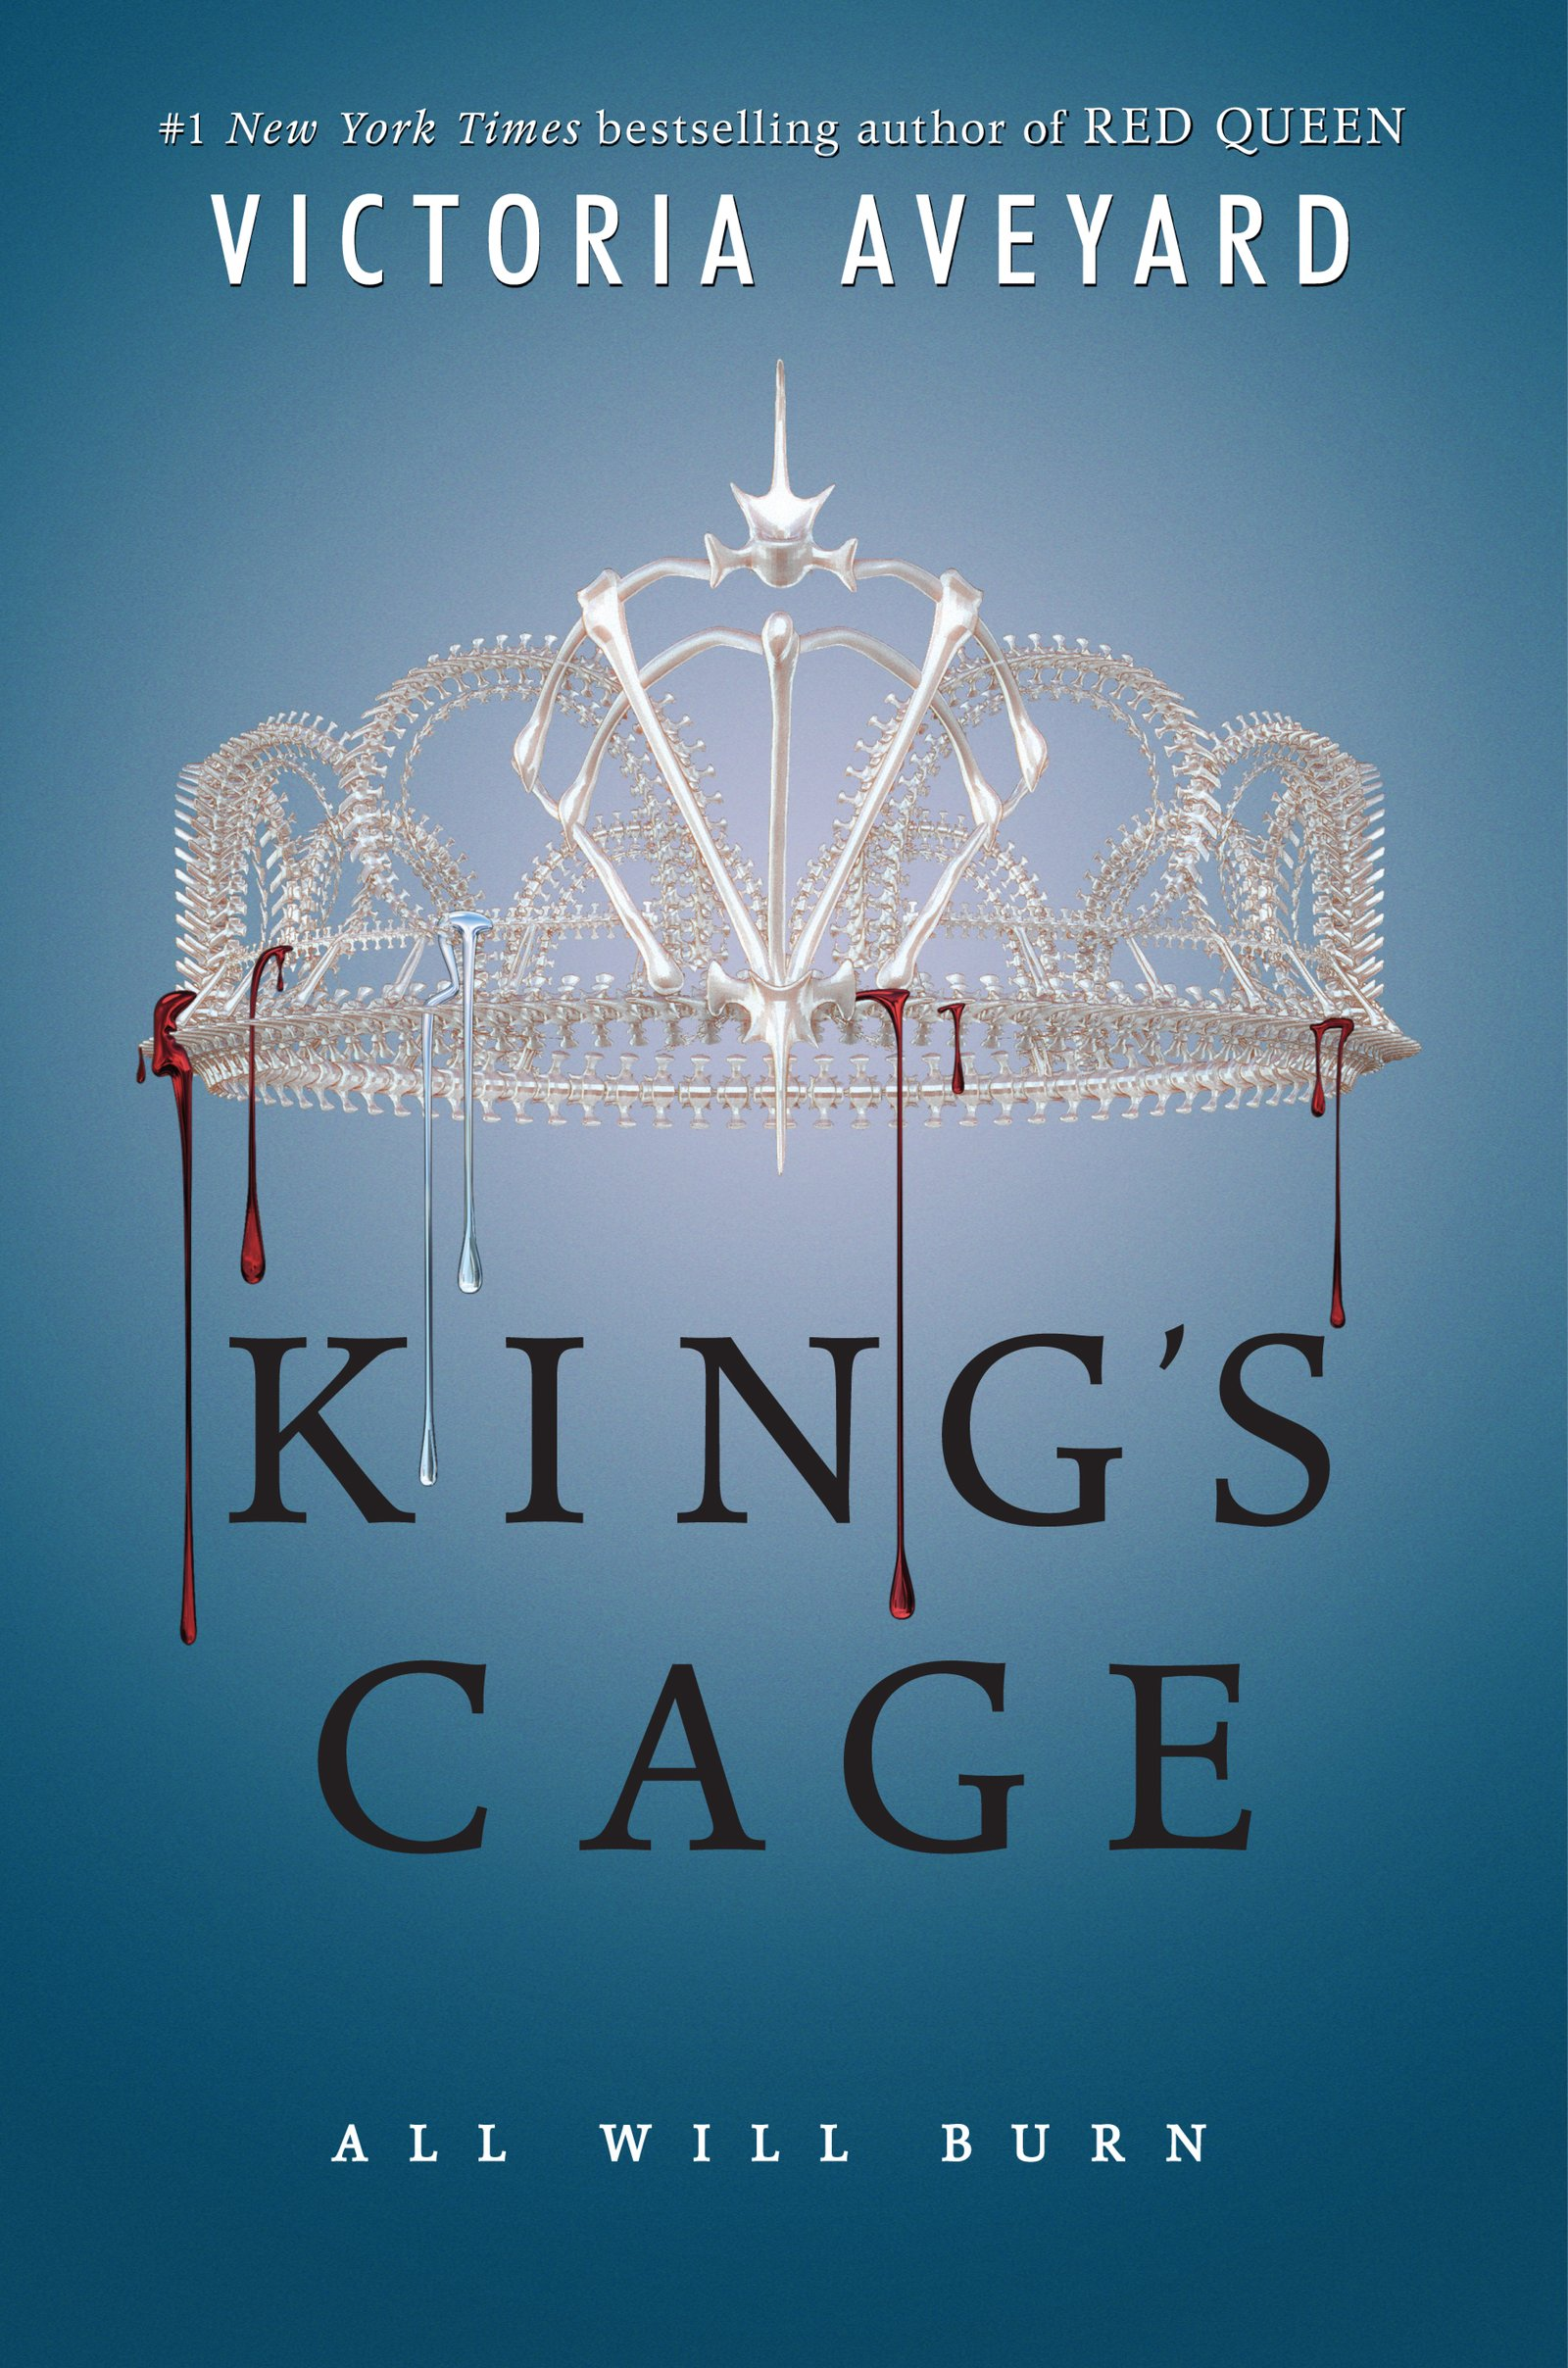 Buy Kings Cage Victoria Aveyard Now!